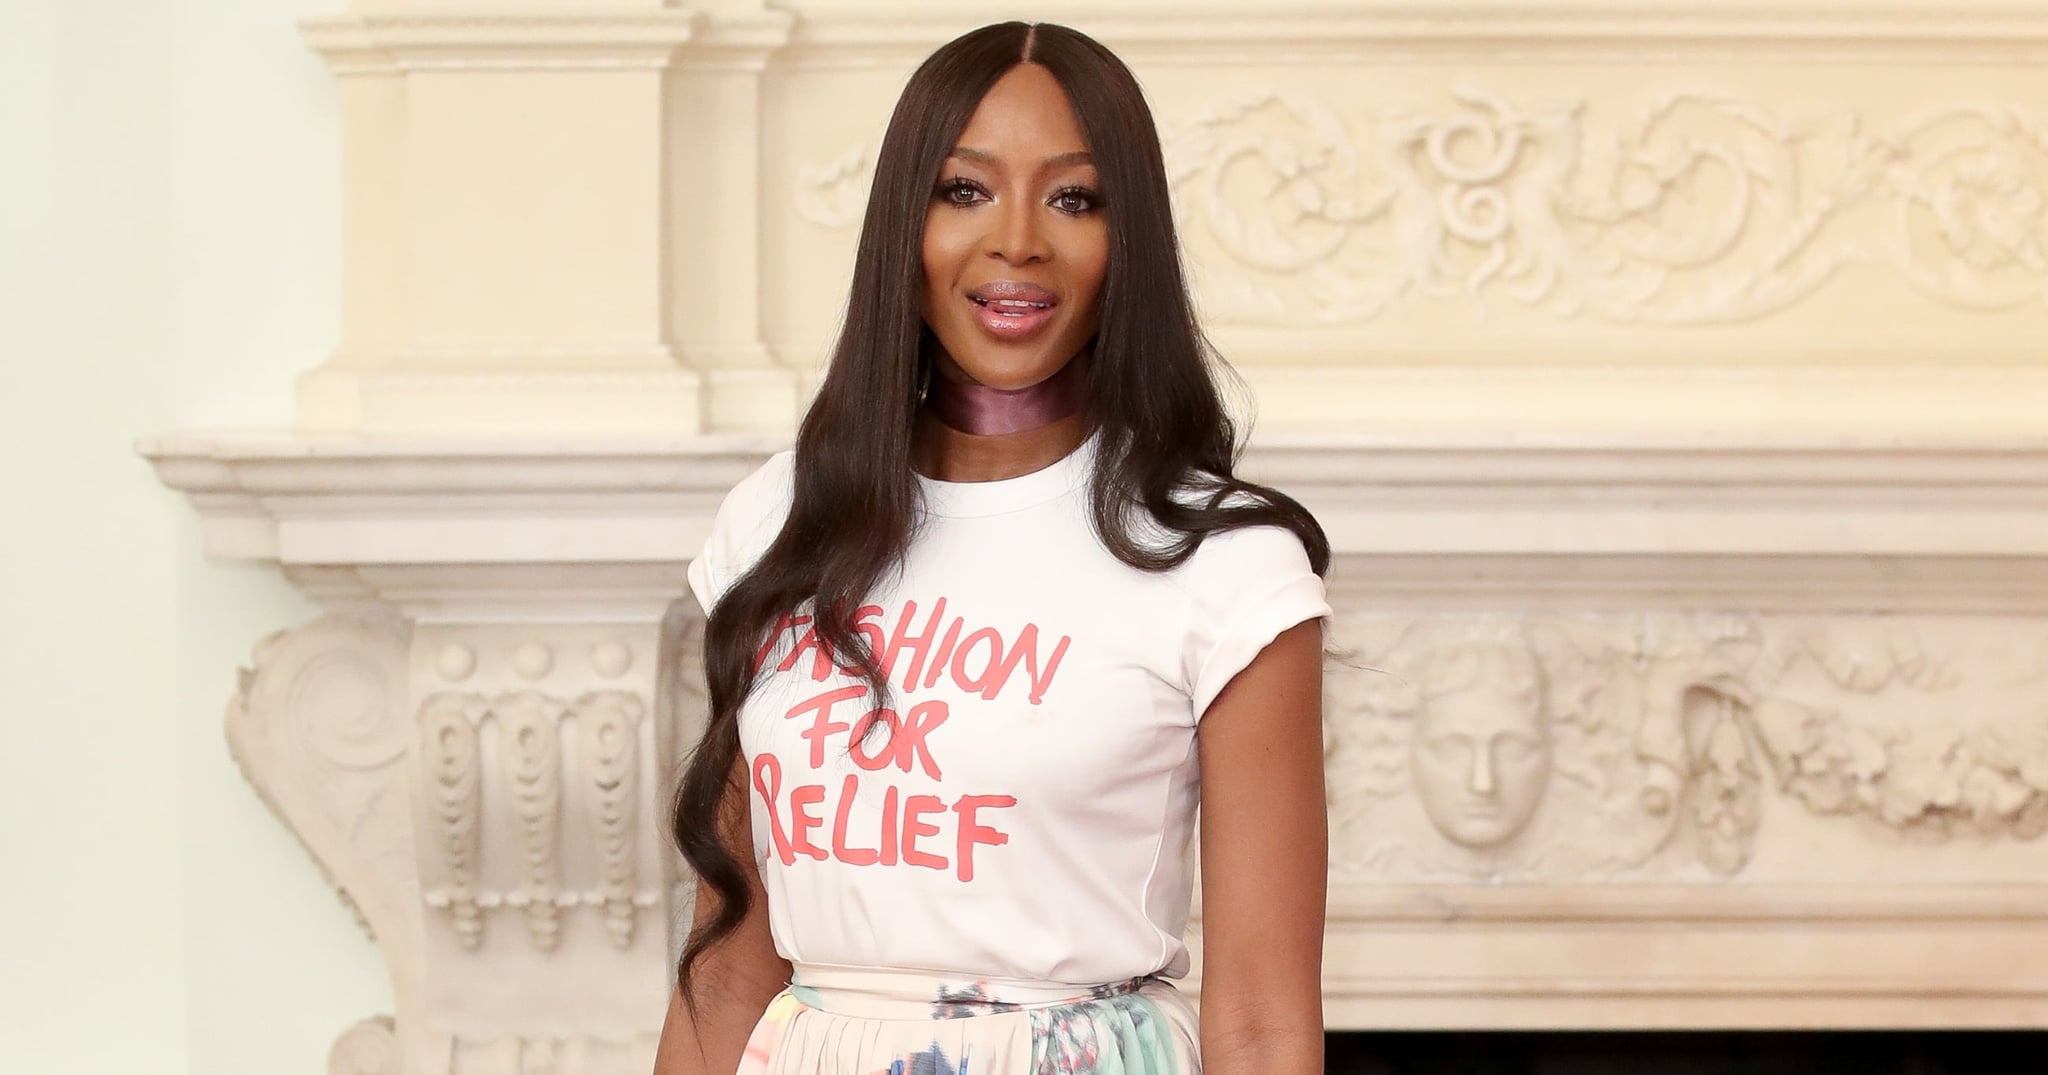 Naomi Campbell Responds to a Negative Article About Her in a New YouTube Video